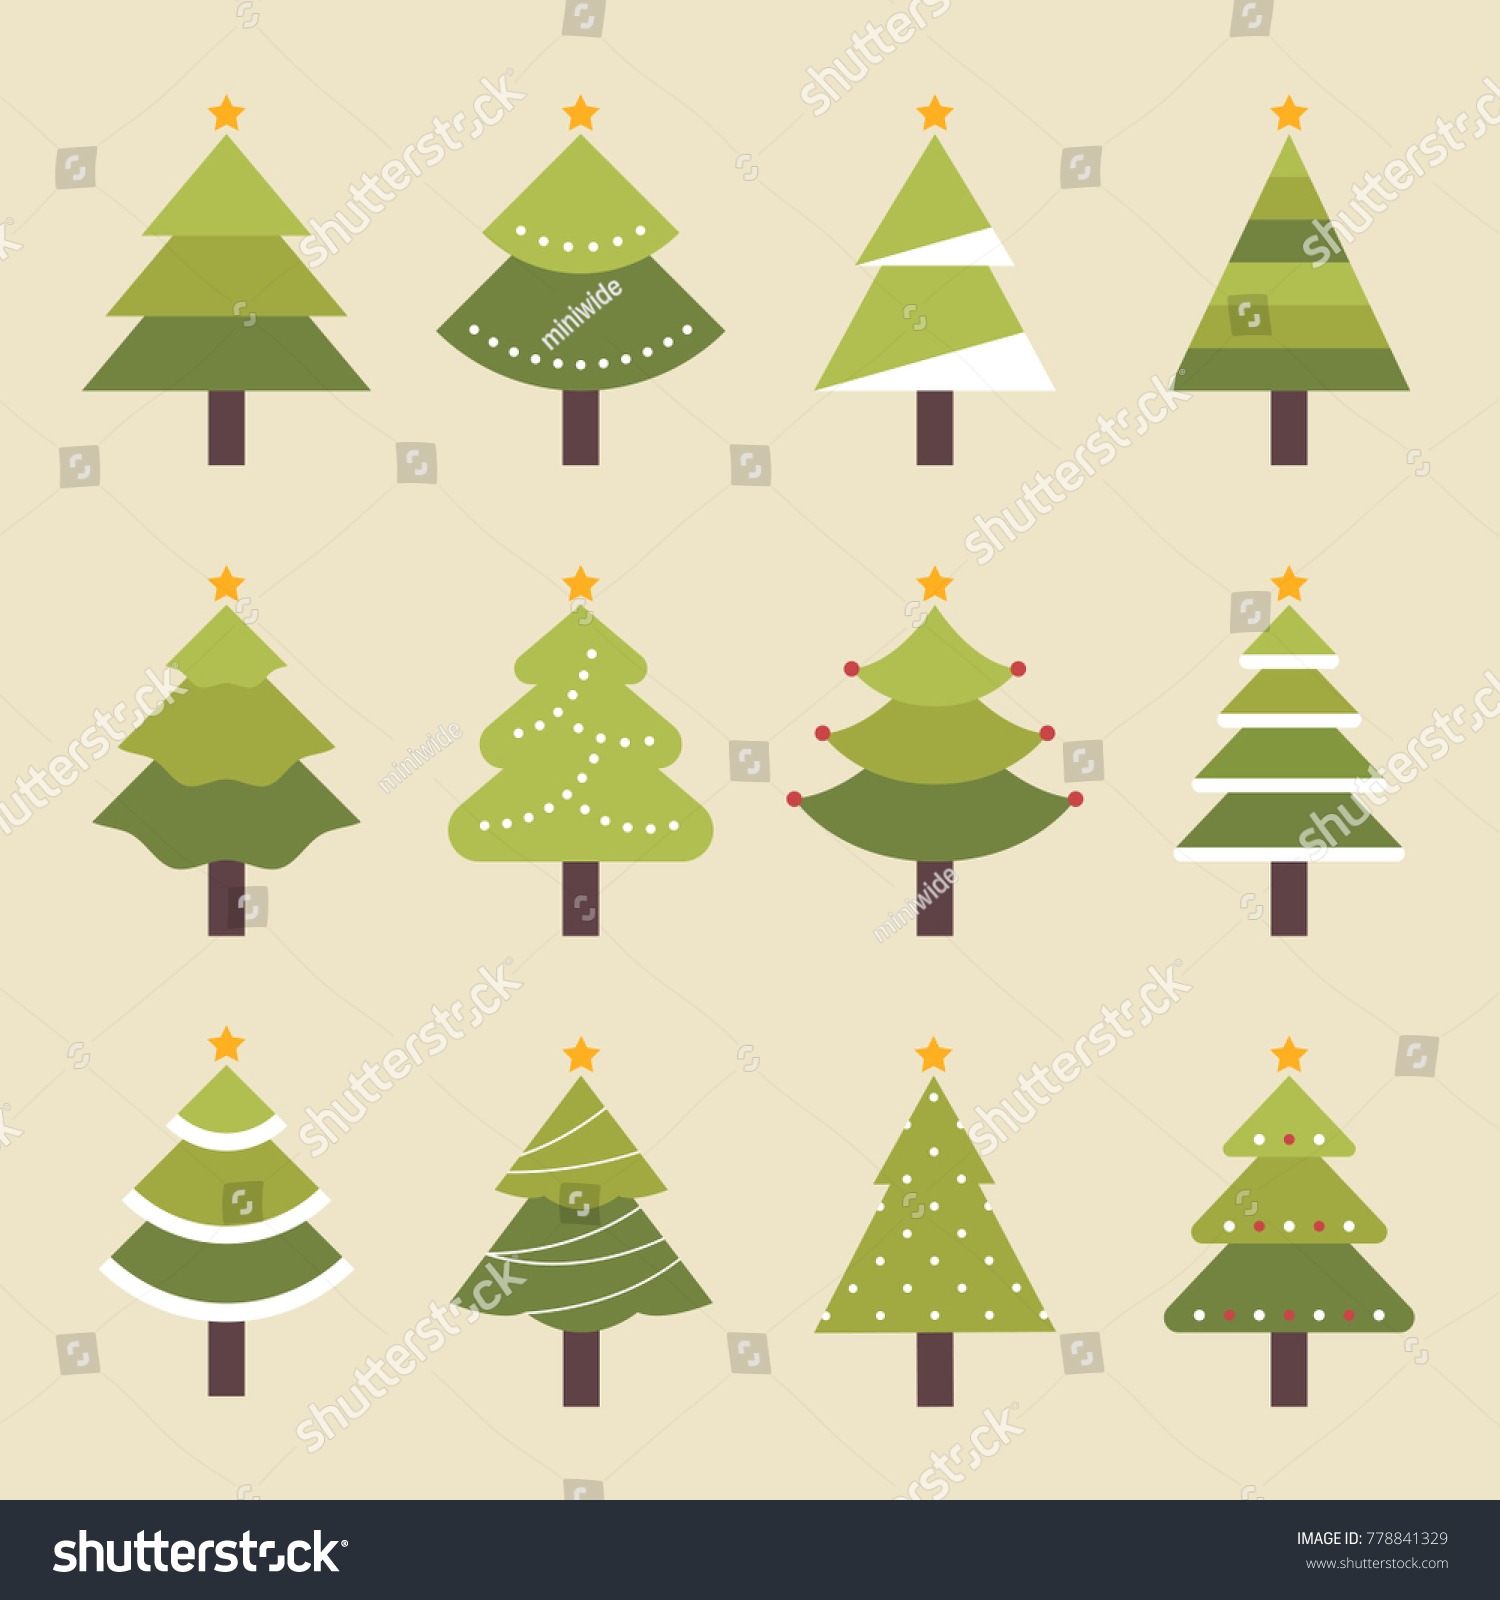 Various Kind Shapes Christmas Trees Vector Stock Vector (Royalty ...